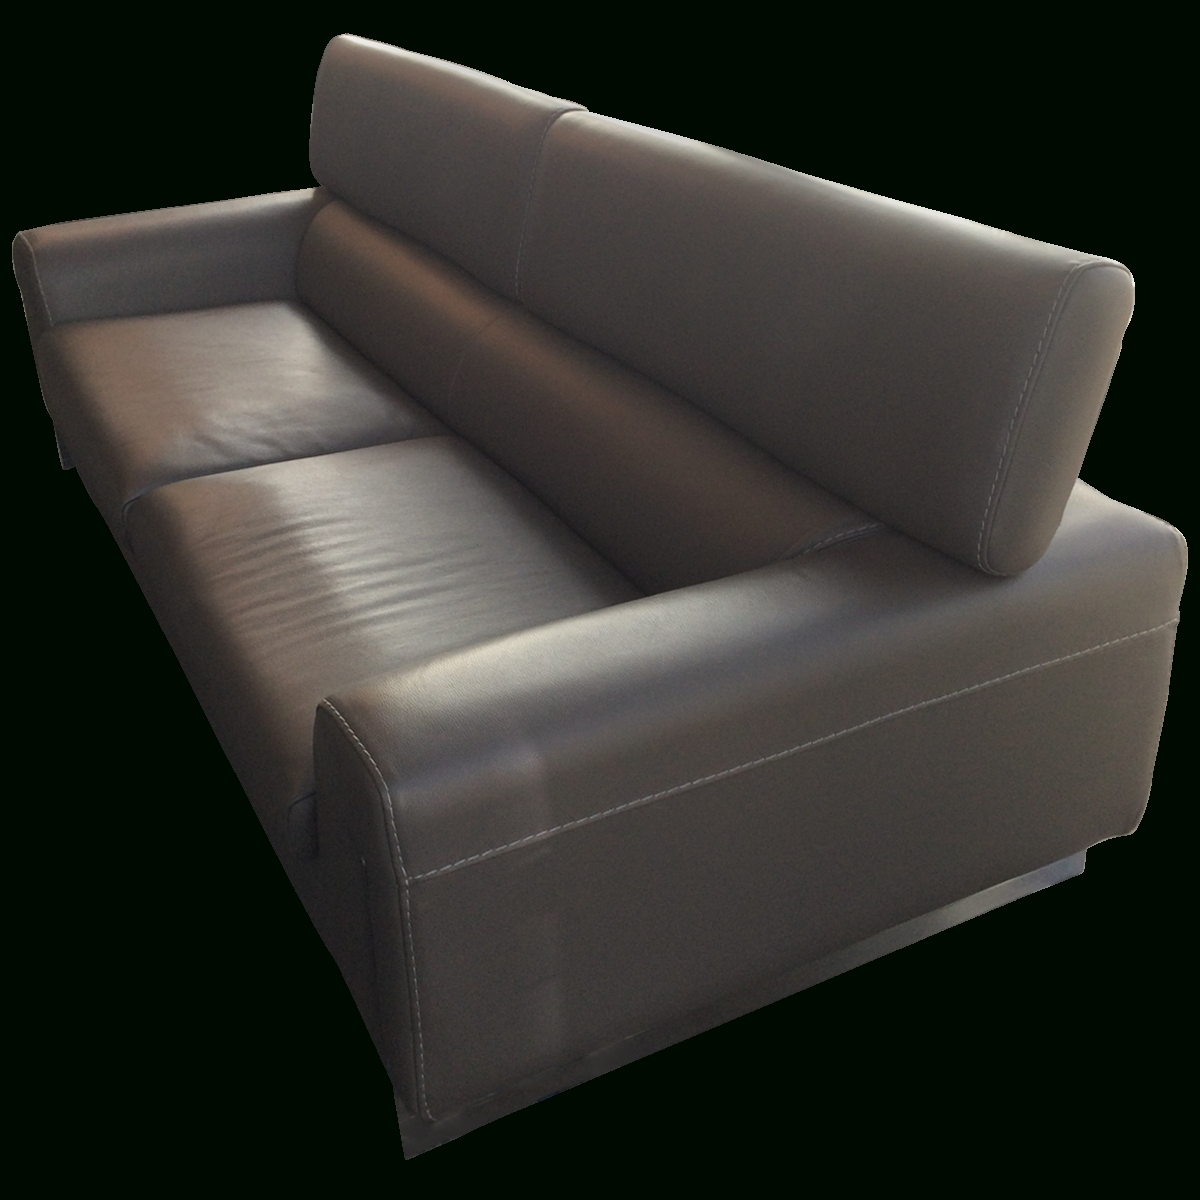 Viyet - Designer Furniture - Seating - Cantoni Italian Leather with Cantoni Sofas (Image 15 of 15)